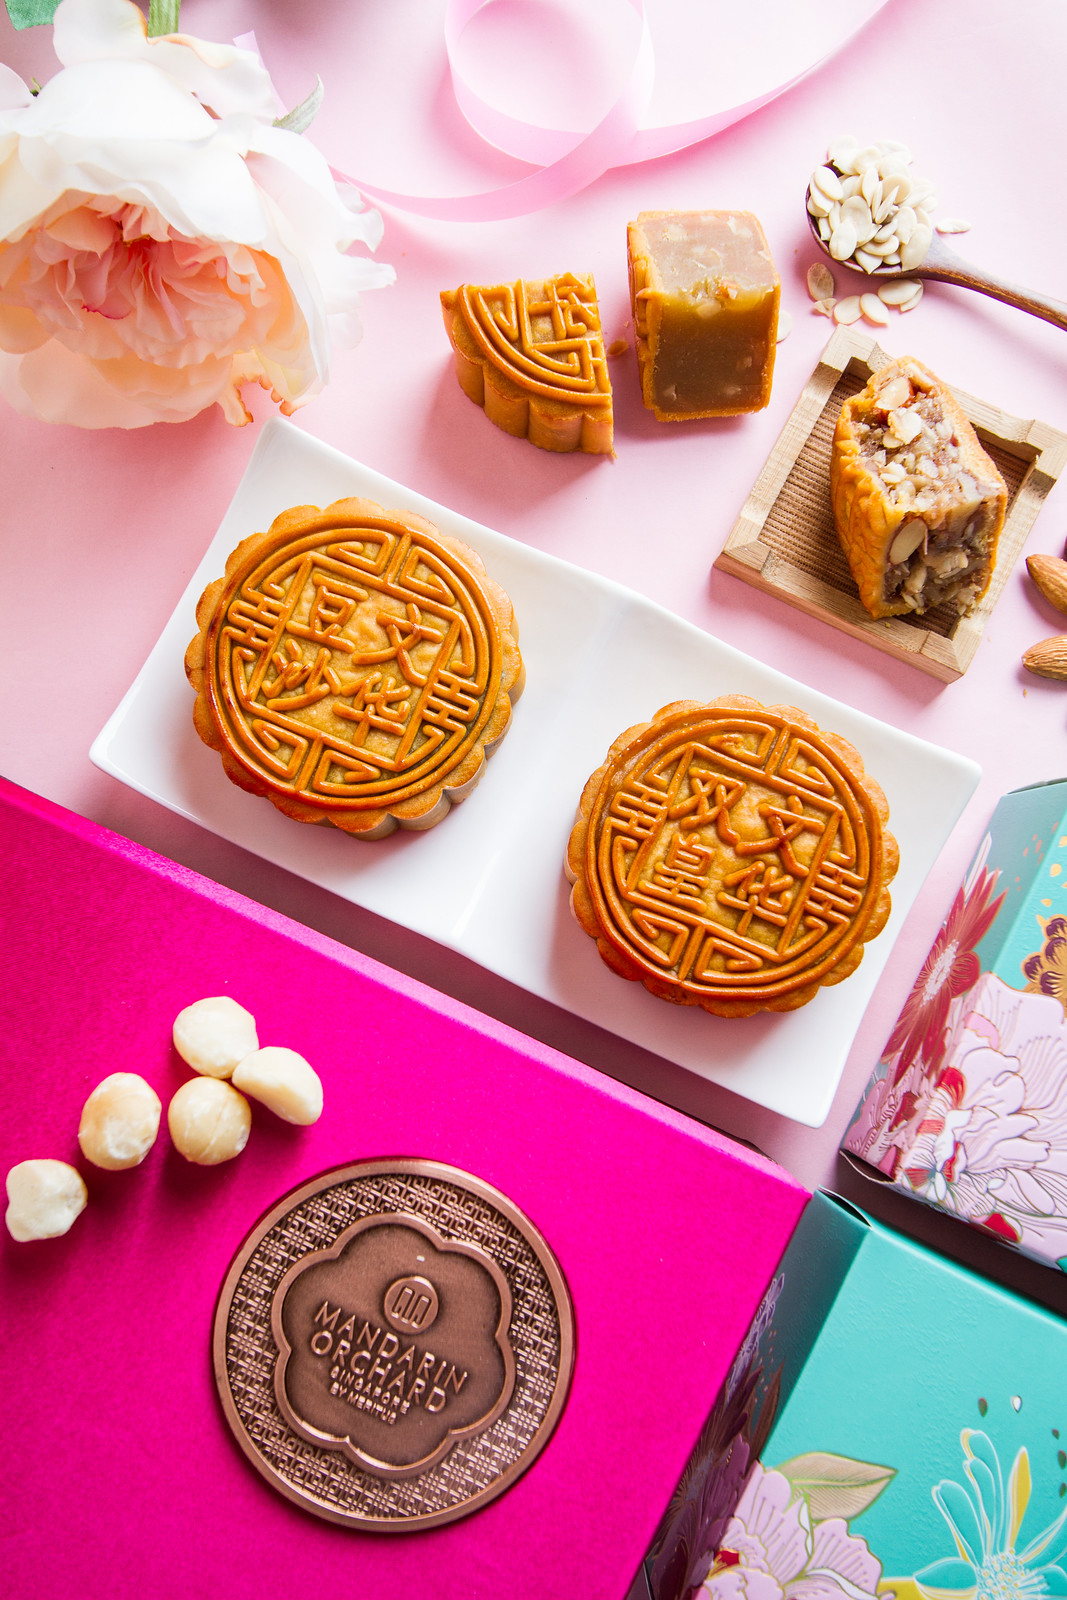 Mandarin Orchard mooncake 2016 - Baked Mooncake with Single/Double Yolk and White Lotus Paste